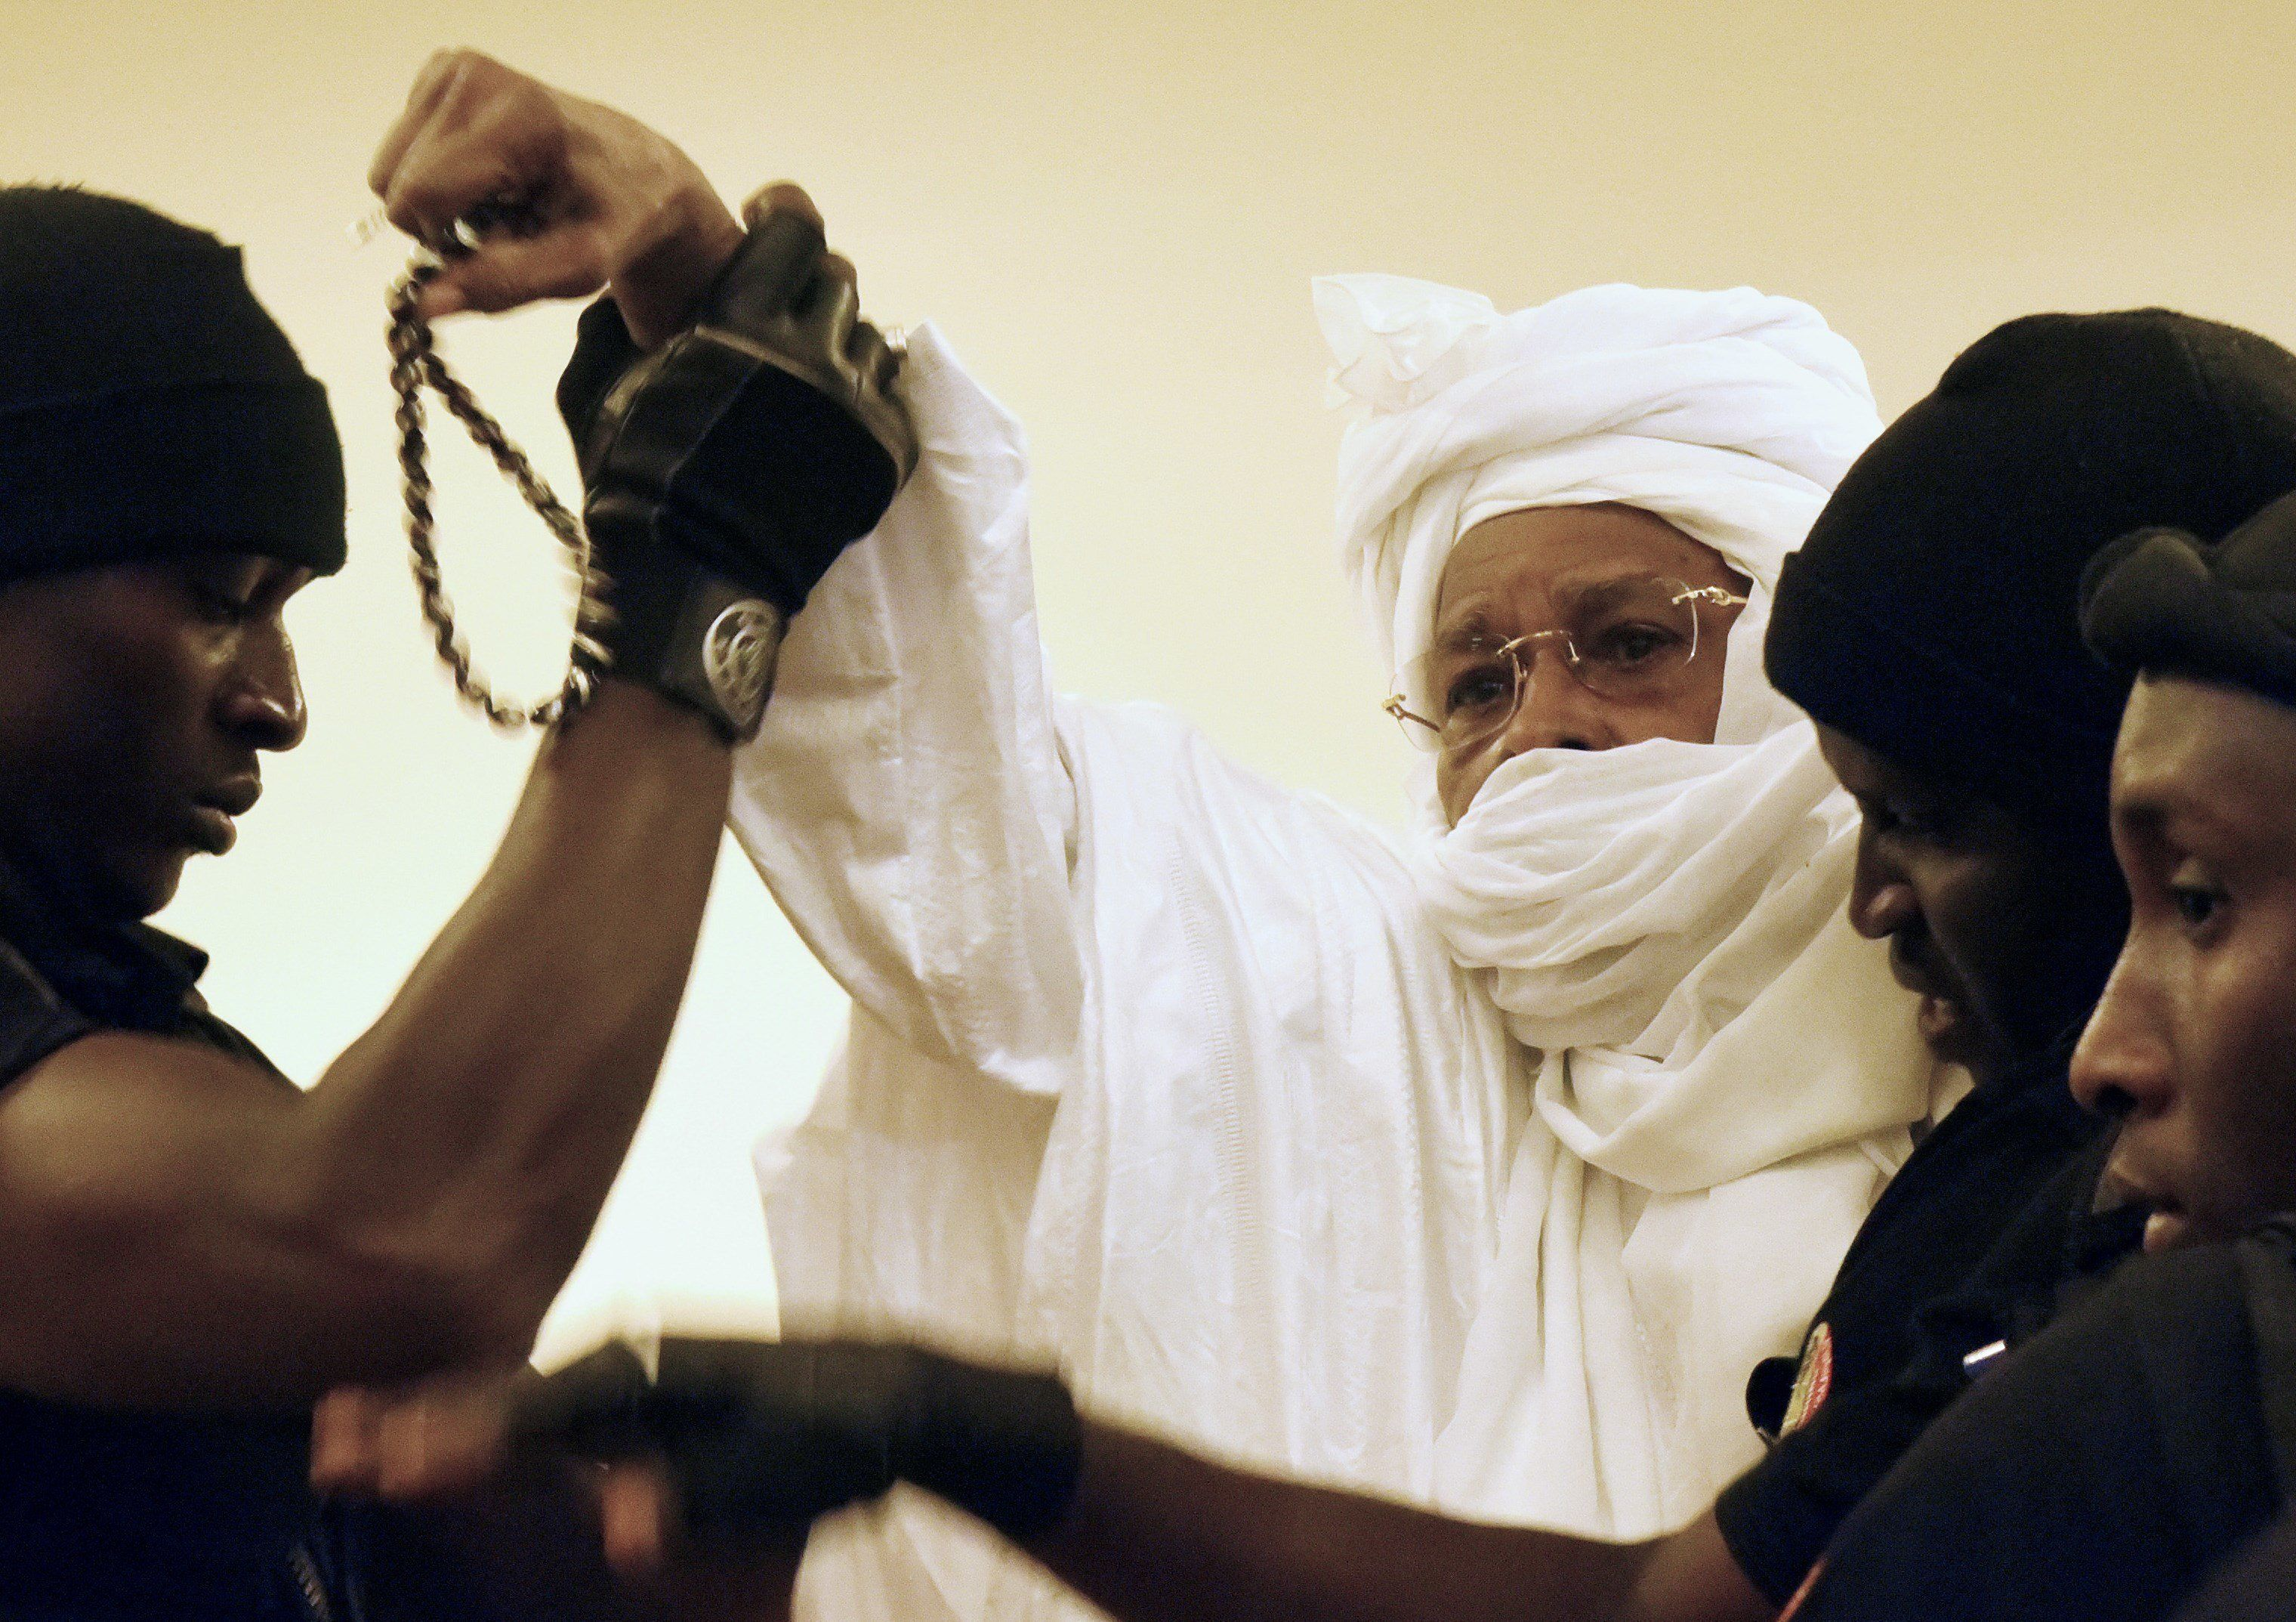 On the first day of his trial in 2015, Habré scuffledwith security guards and yelled at the judges. After that,